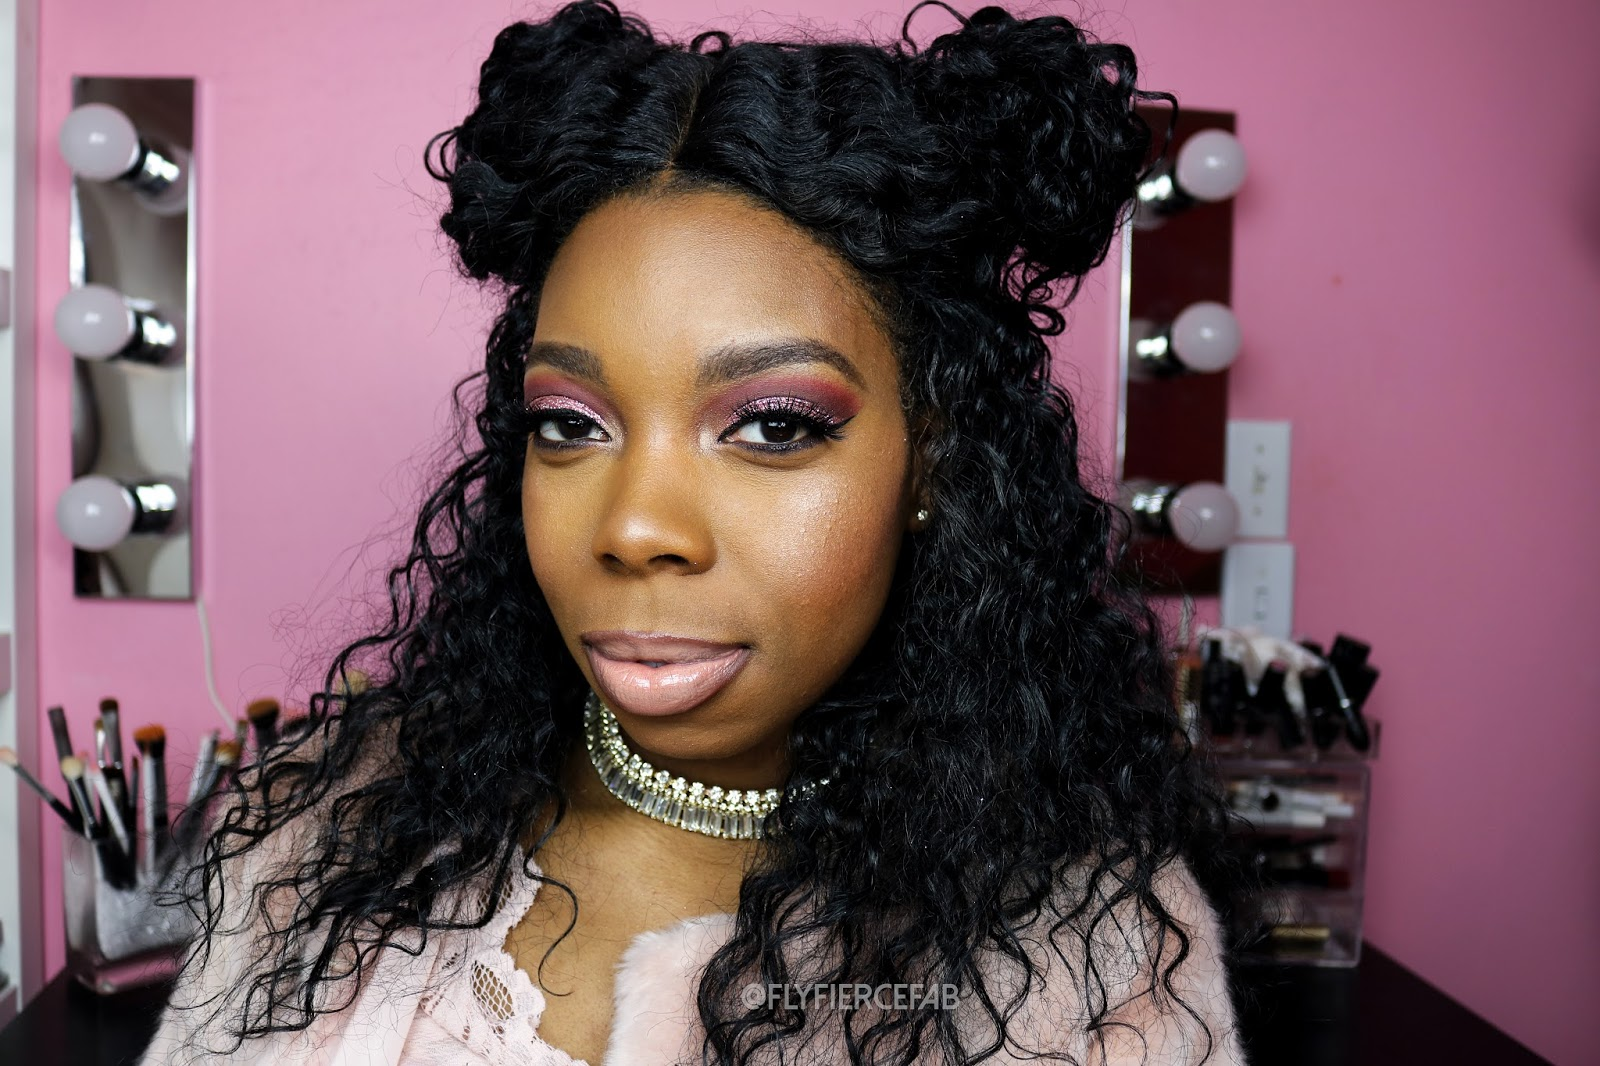 c4d7b66926a I'm really enjoying creating my Holiday videos, and I just uploaded a Pink  Glitter Glam Holiday Makeup Tutorial (bet you can't guess my favorite color  LOL) ...